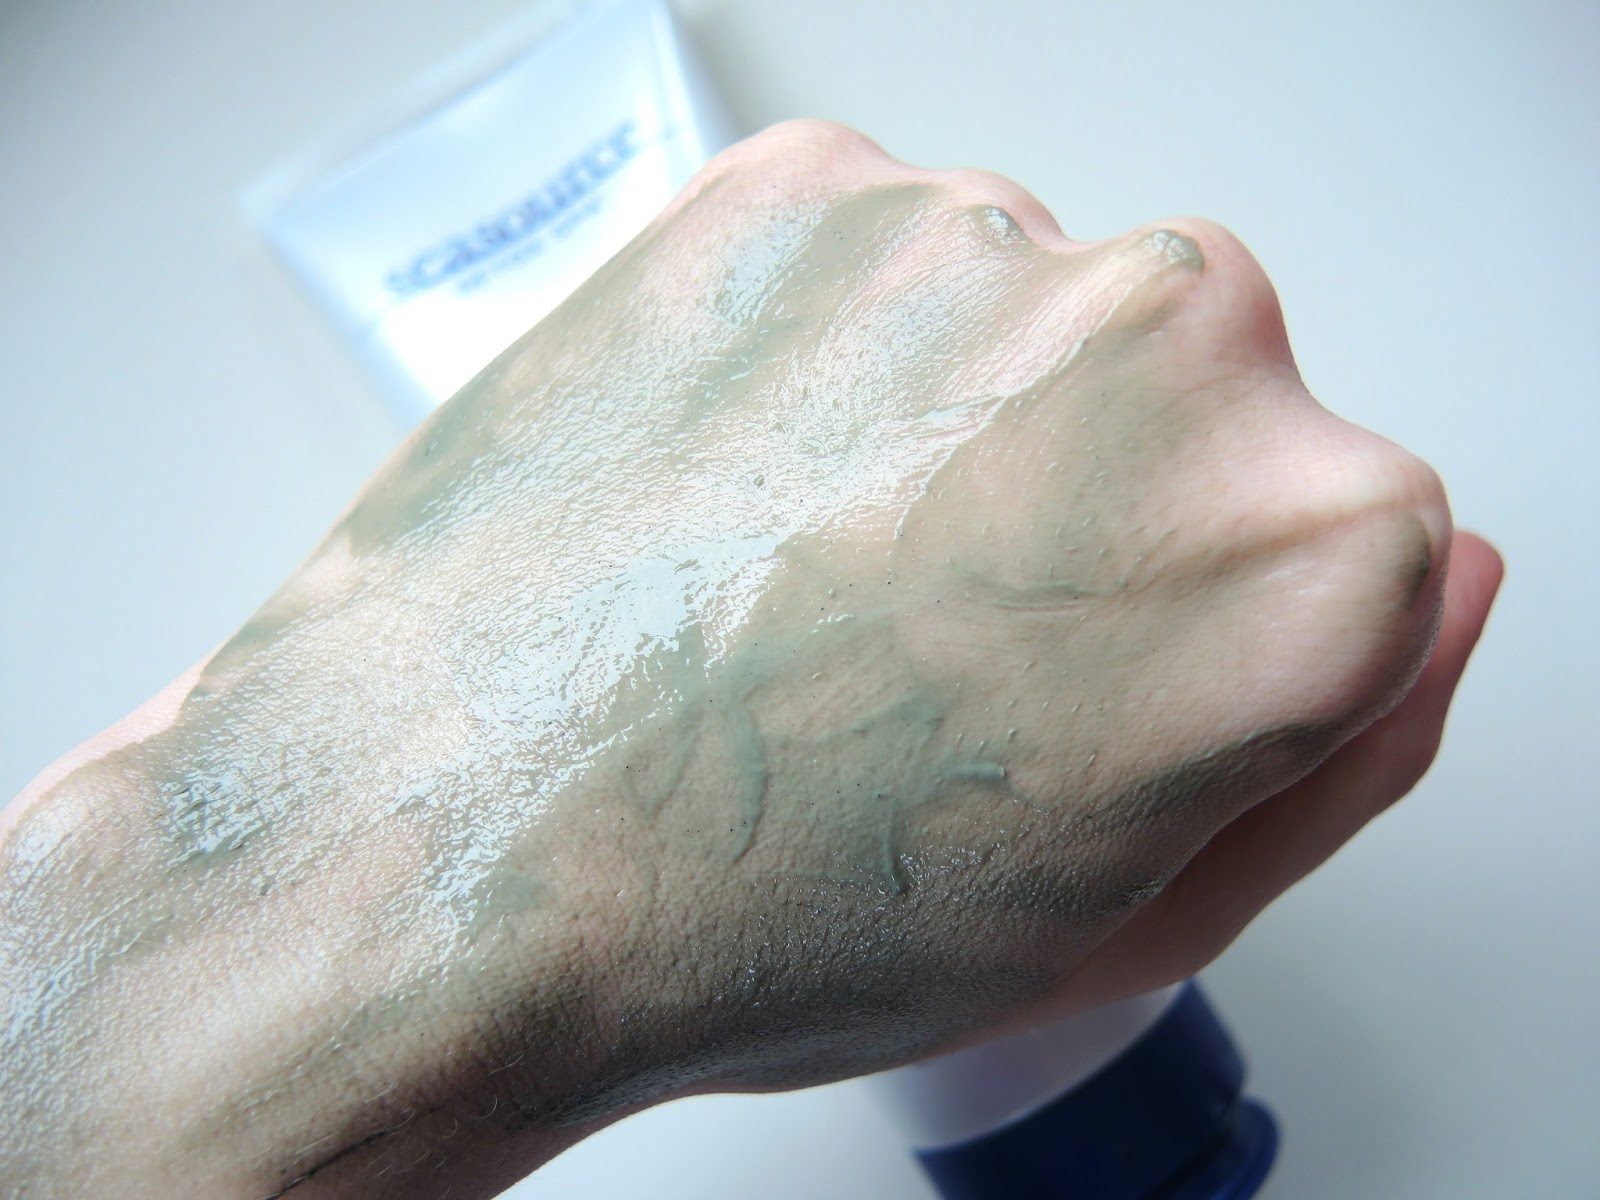 Arbonne Sea Mud Face & Body Mask Review